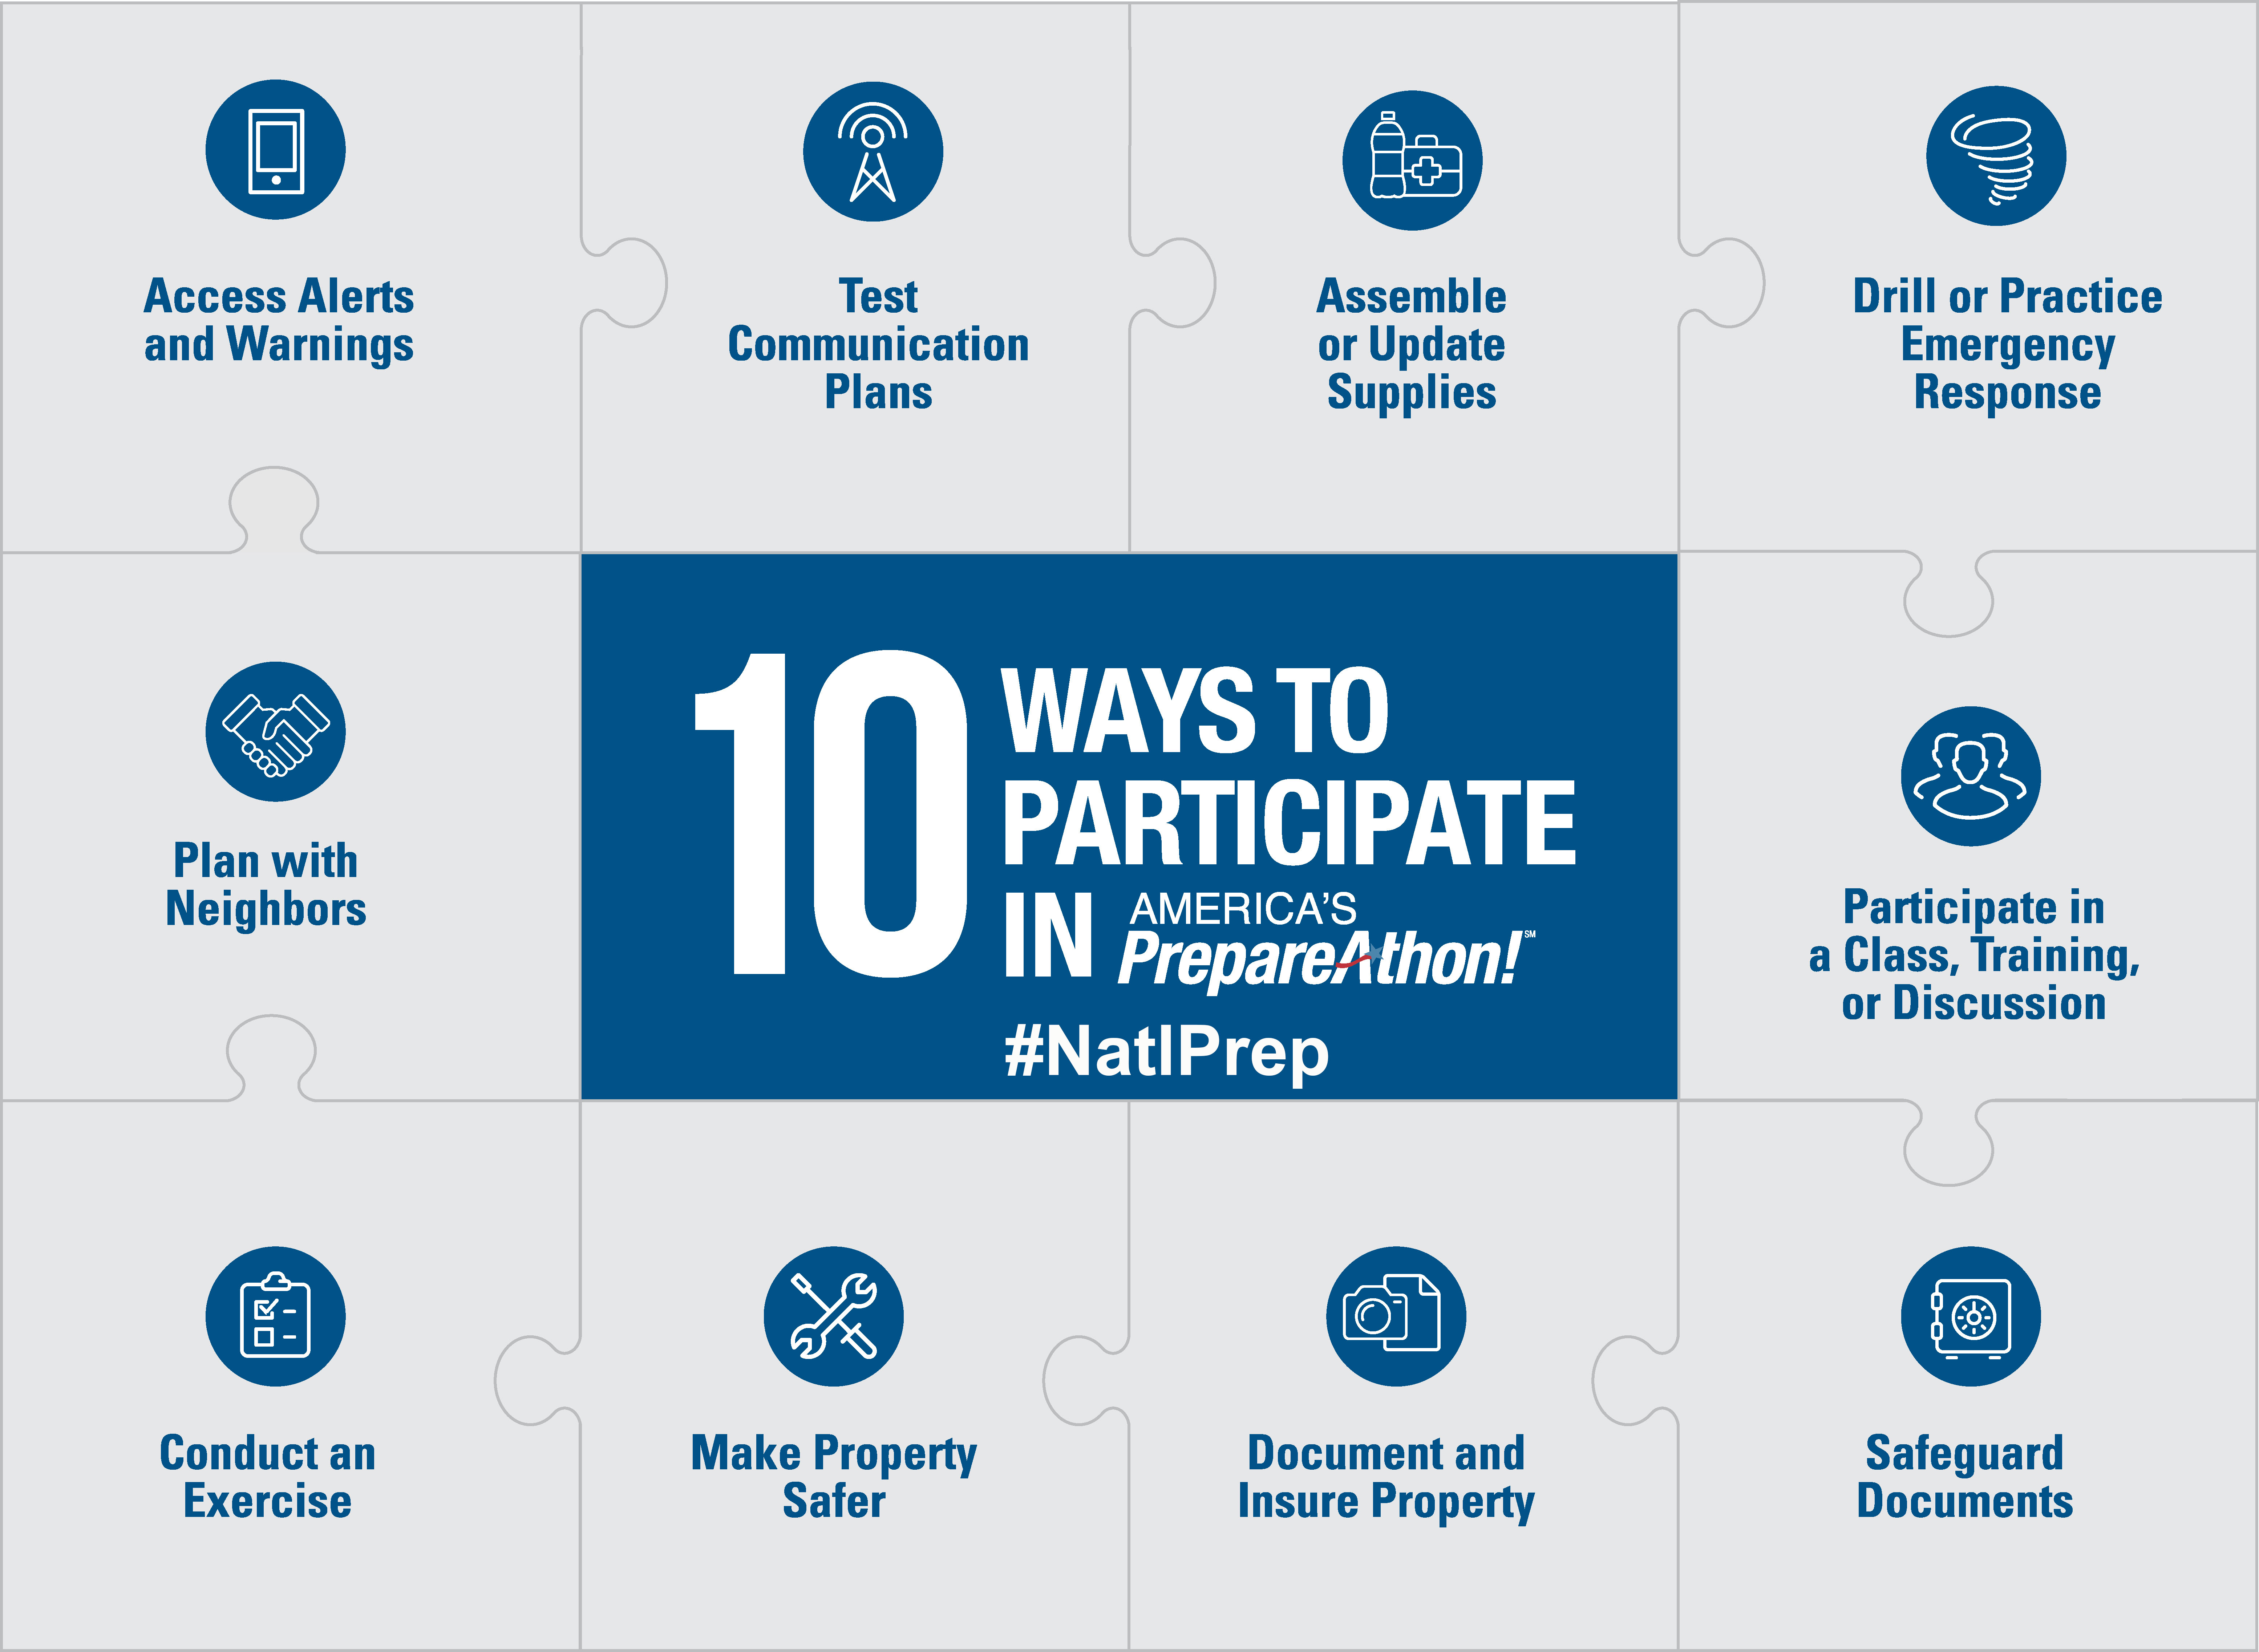 10 Ways to Particpate in PrepareAthon Graphic